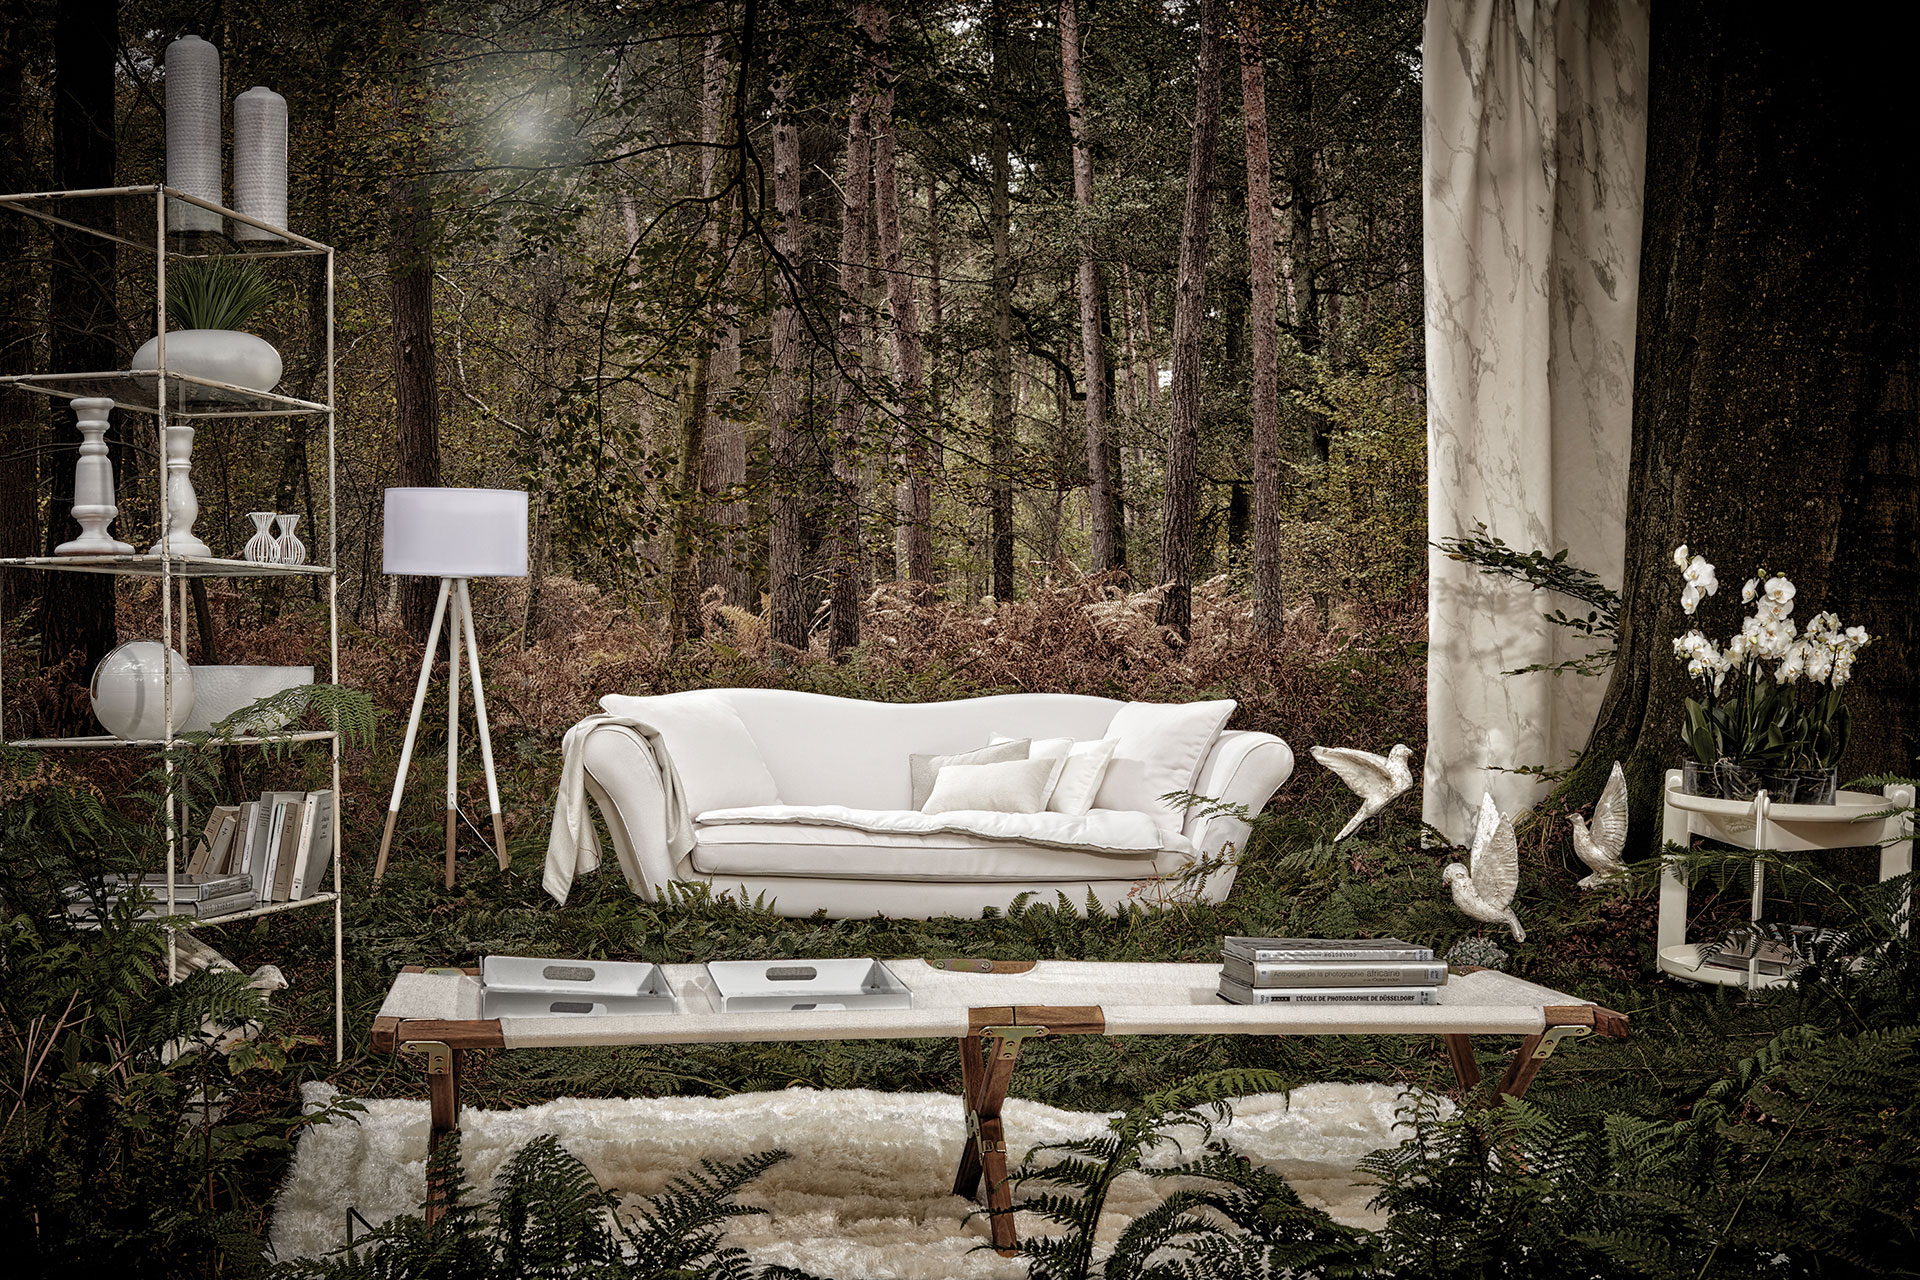 An indoor living room setting is placed outside in a forest, centered around a sofa covered with white Sunbrella fabric.